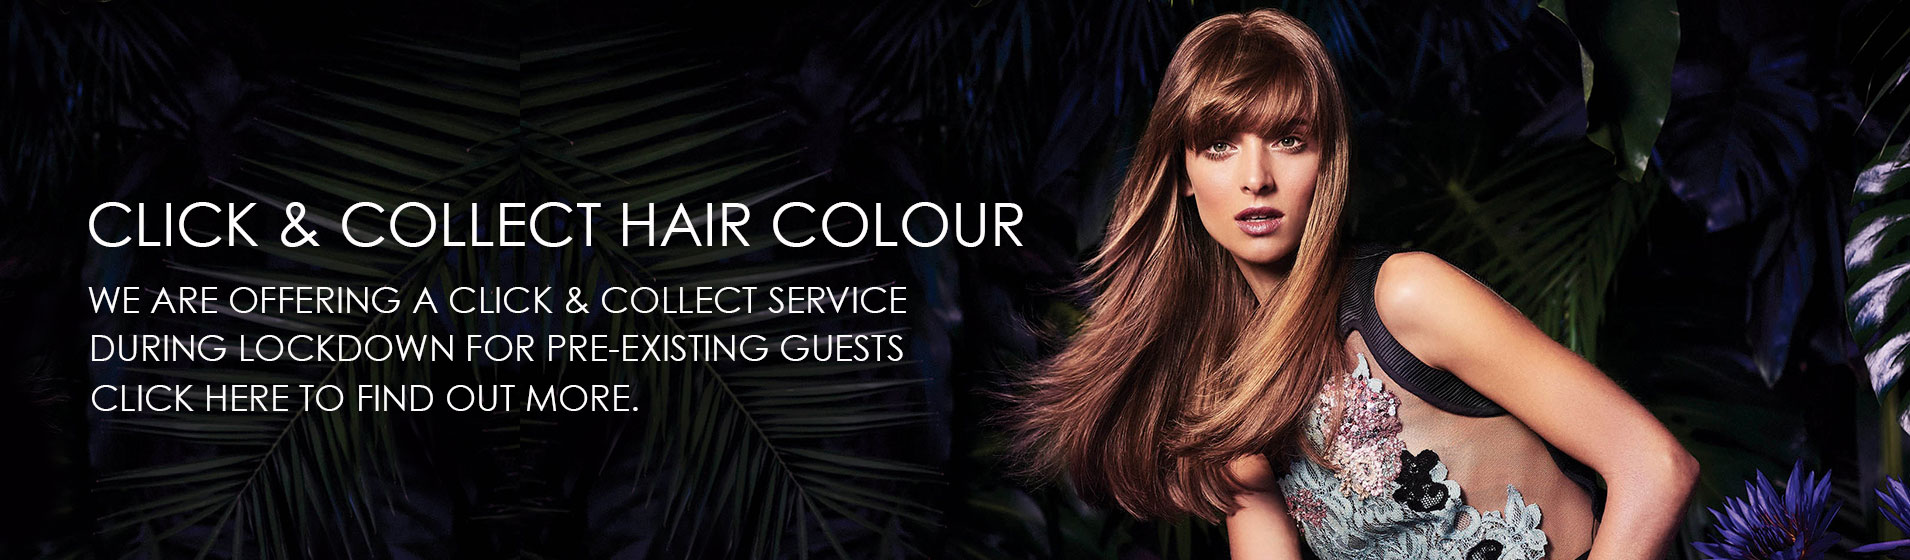 click and collect hair colour at elements hair salon in Oxted, Surrey